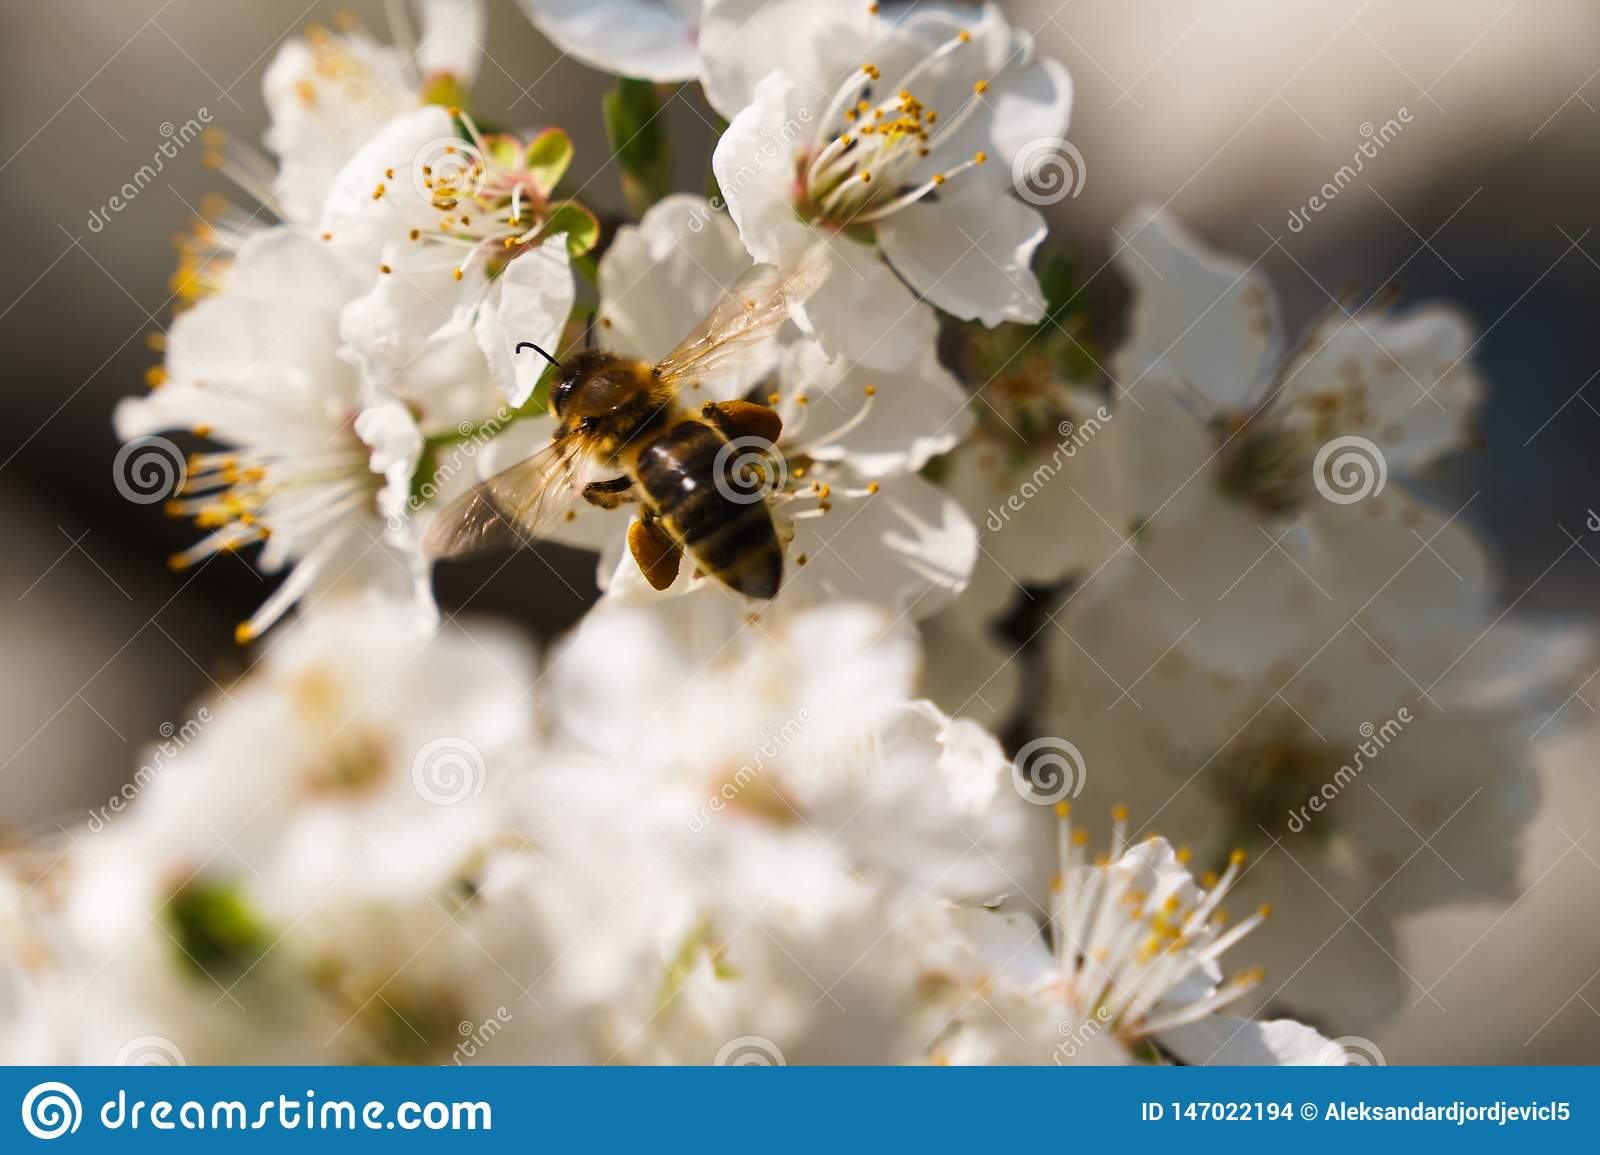 Busy bee carrieing pollen from tree flower